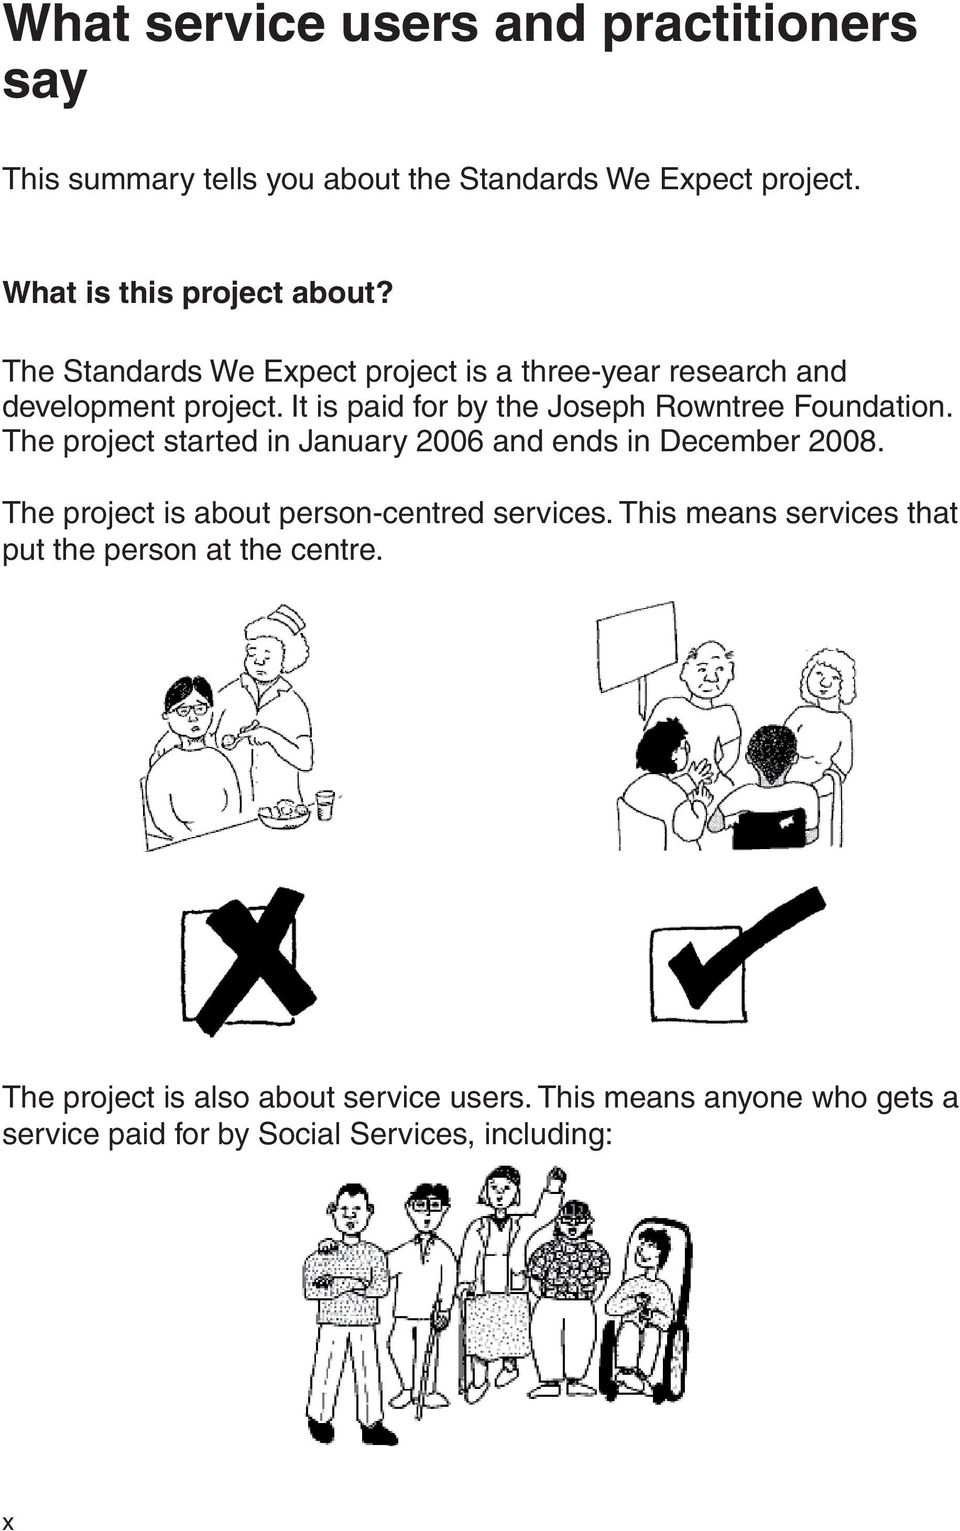 The project started in January 2006 and ends in December 2008. The project is about person-centred services.